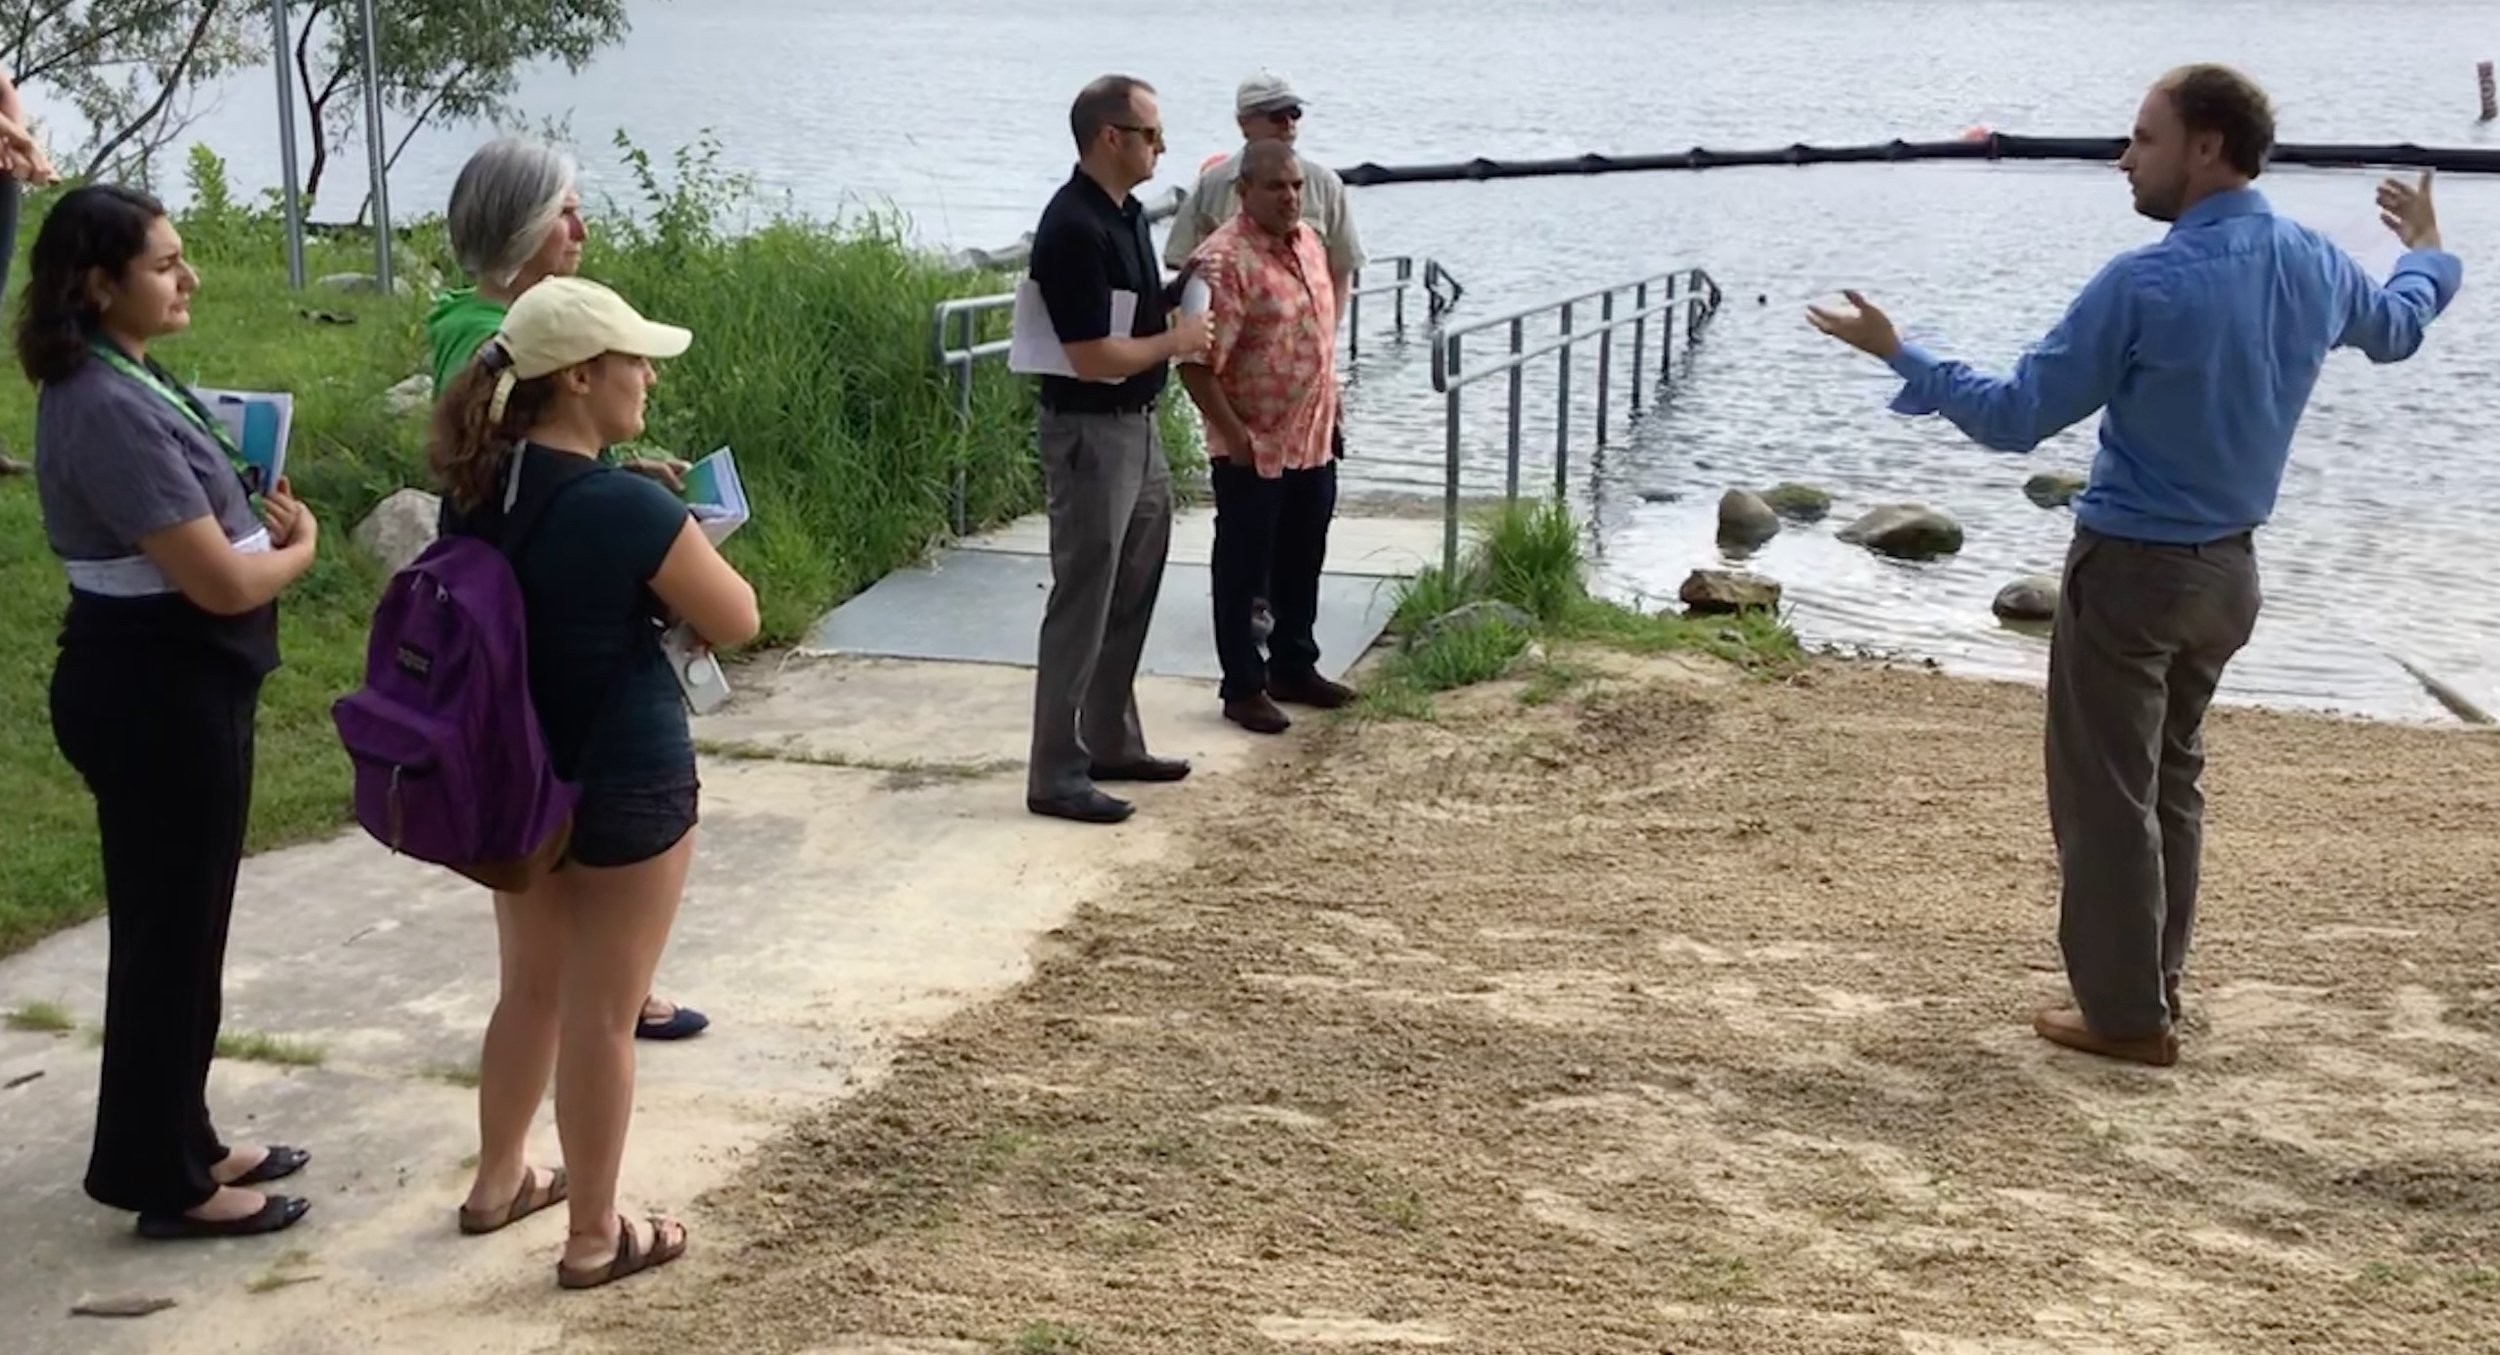 Jon Reimer of Land and Water shows us the clean beach treatment system